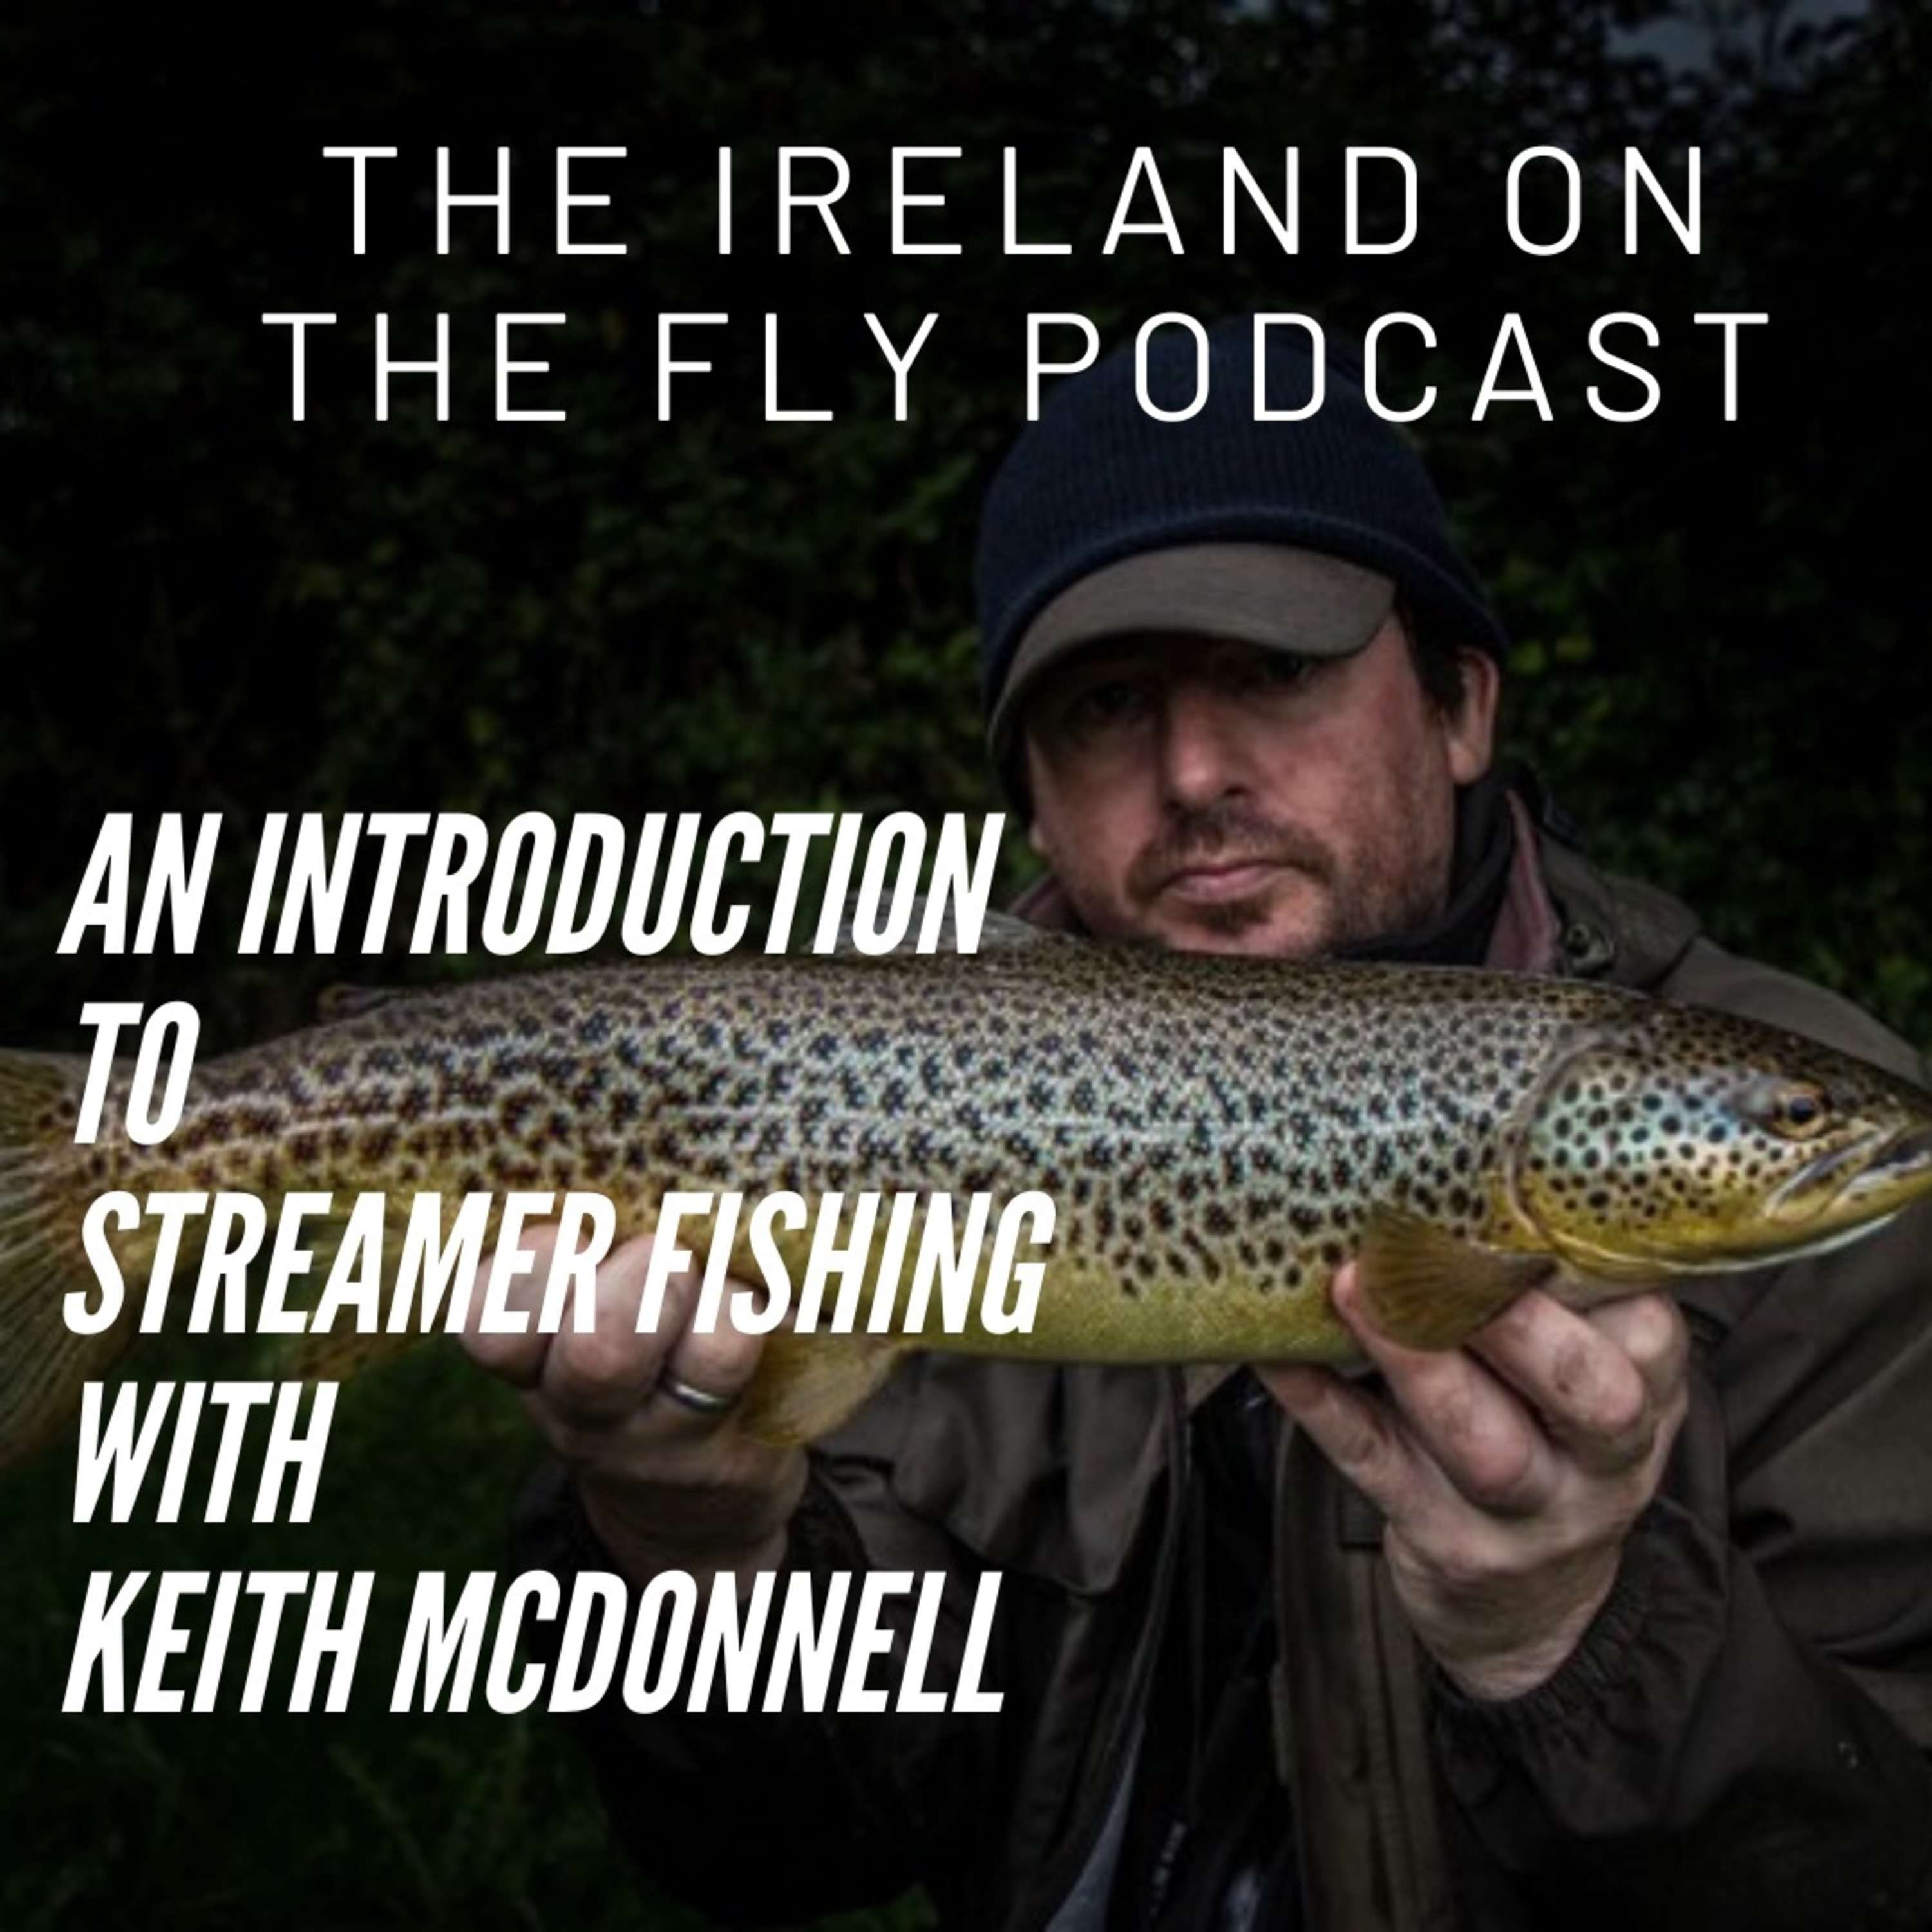 An Introduction to Streamer Fishing with Keith McDonnell